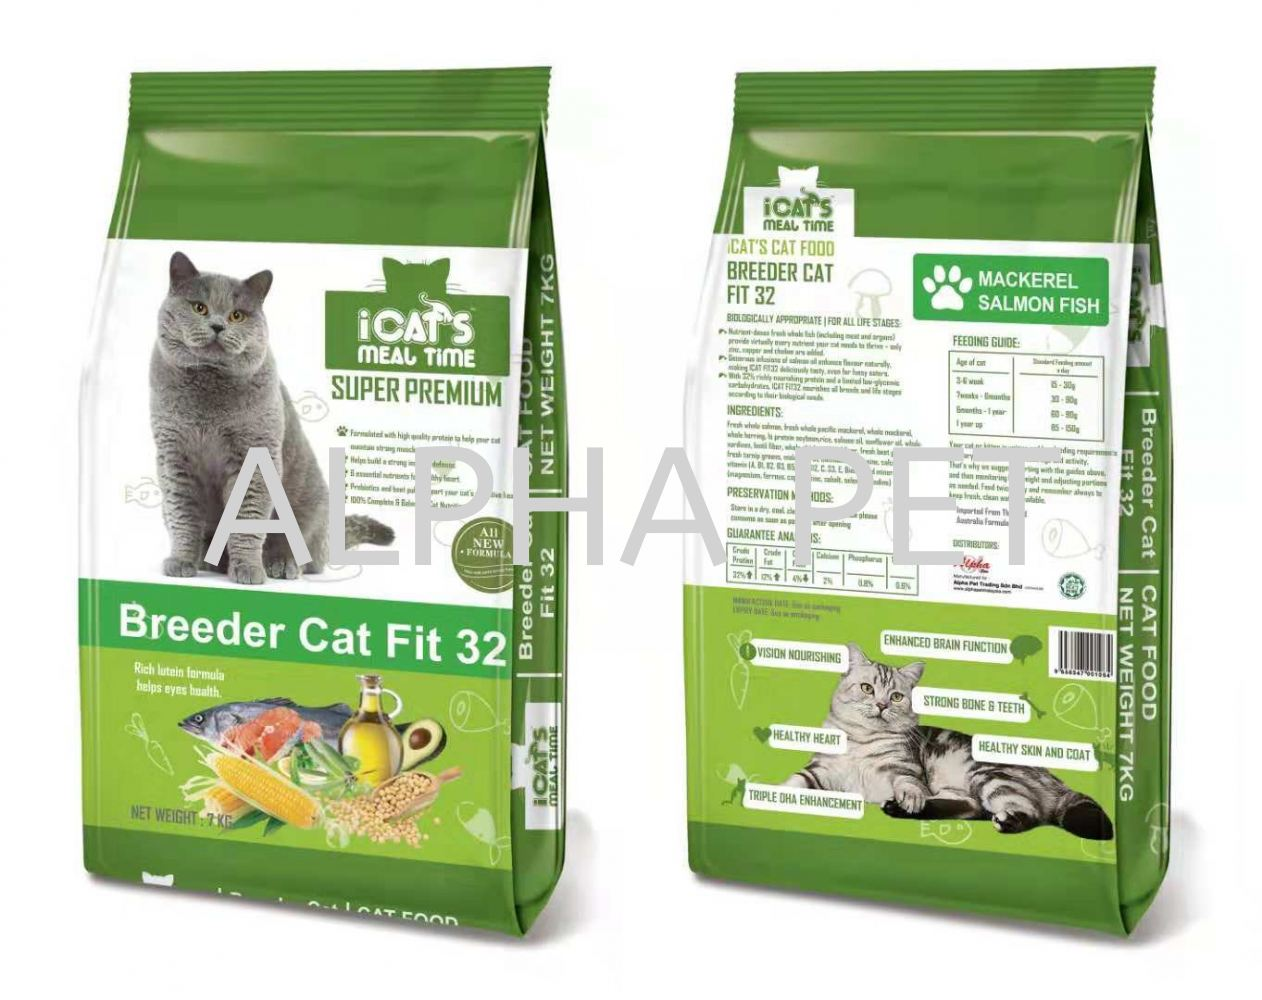 iCAT'S Premium Cat Food - Breeder Cat Fit 32